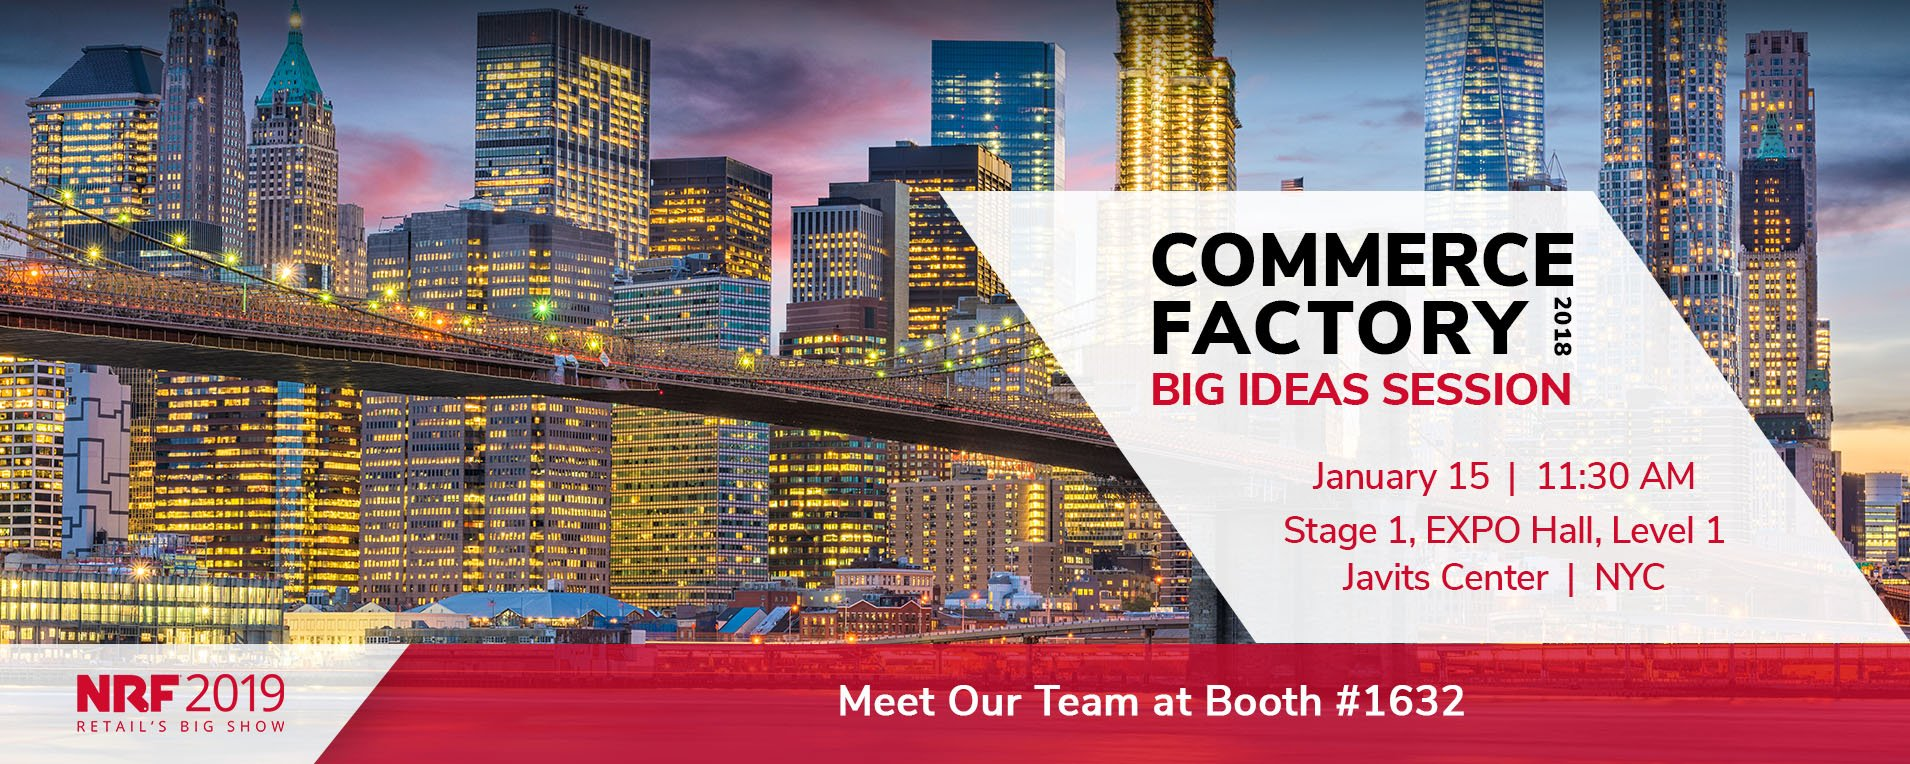 CommerceFactory is coming to NRF 2019